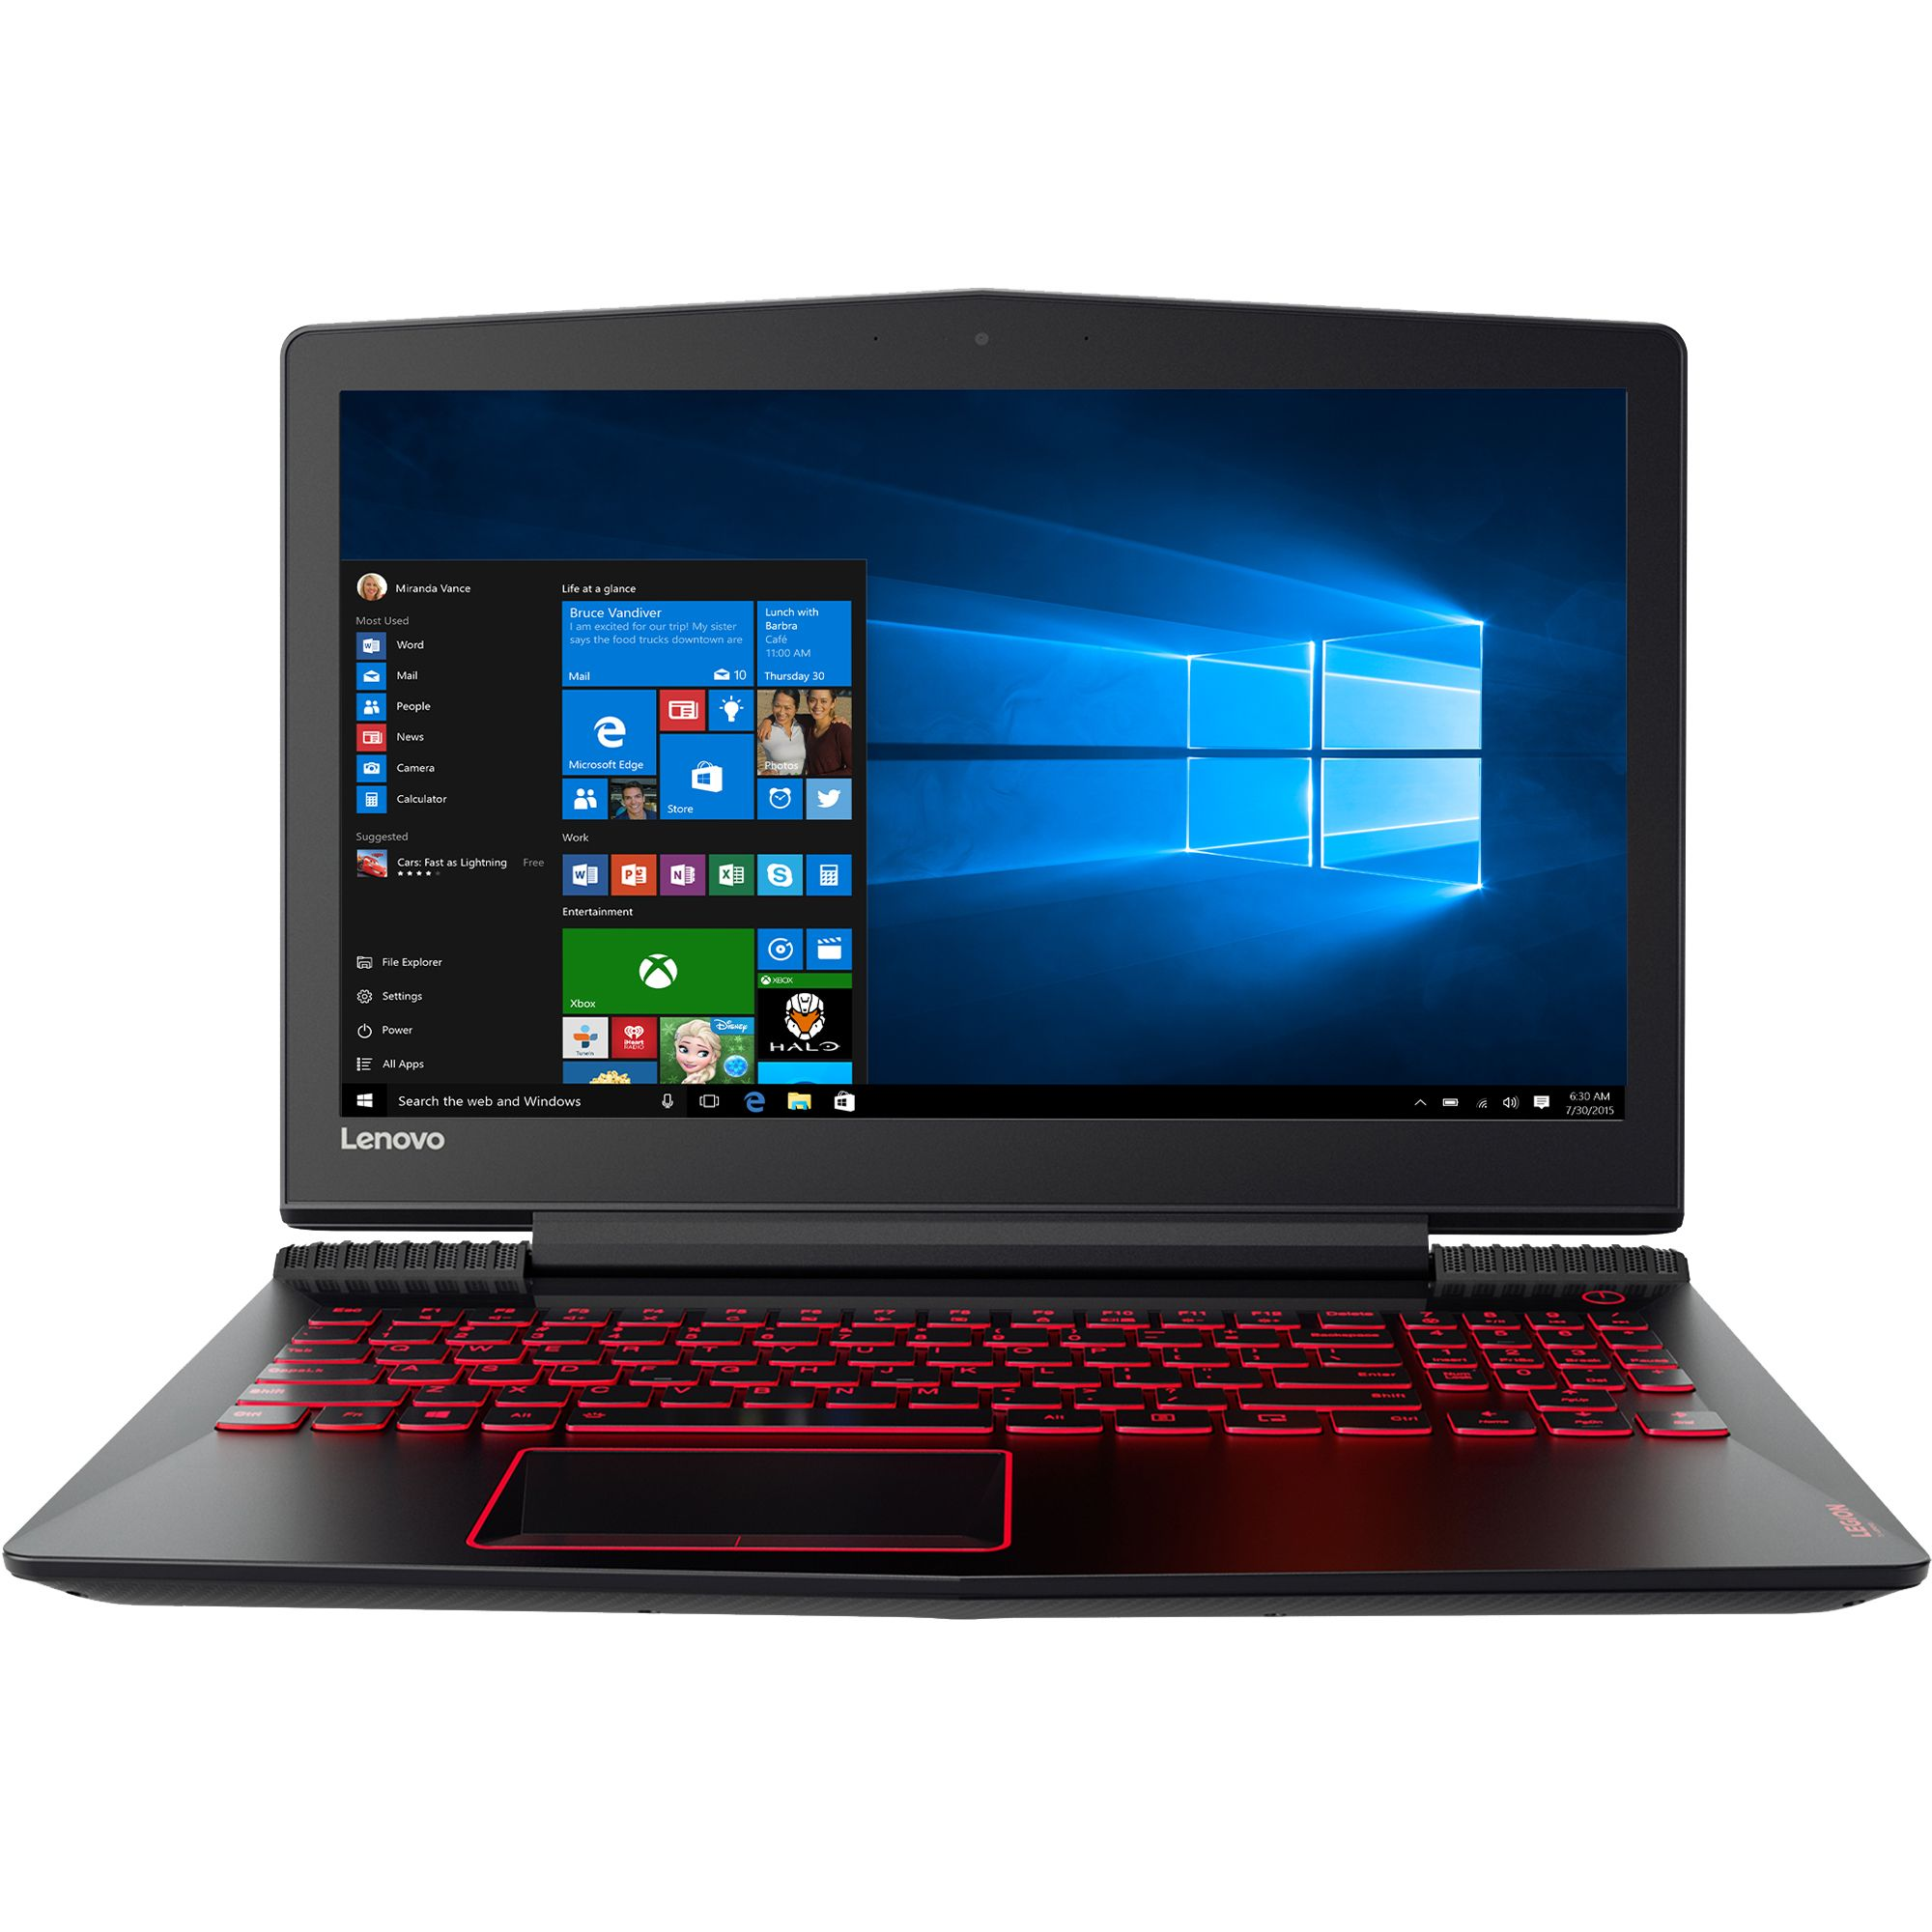 Notebook Lenovo Legion Y520 15.6 Full HD Intel Core i5-7300HQ GTX 1050 Ti-4GB RAM 8GB SSD 256GB FreeDOS Negru